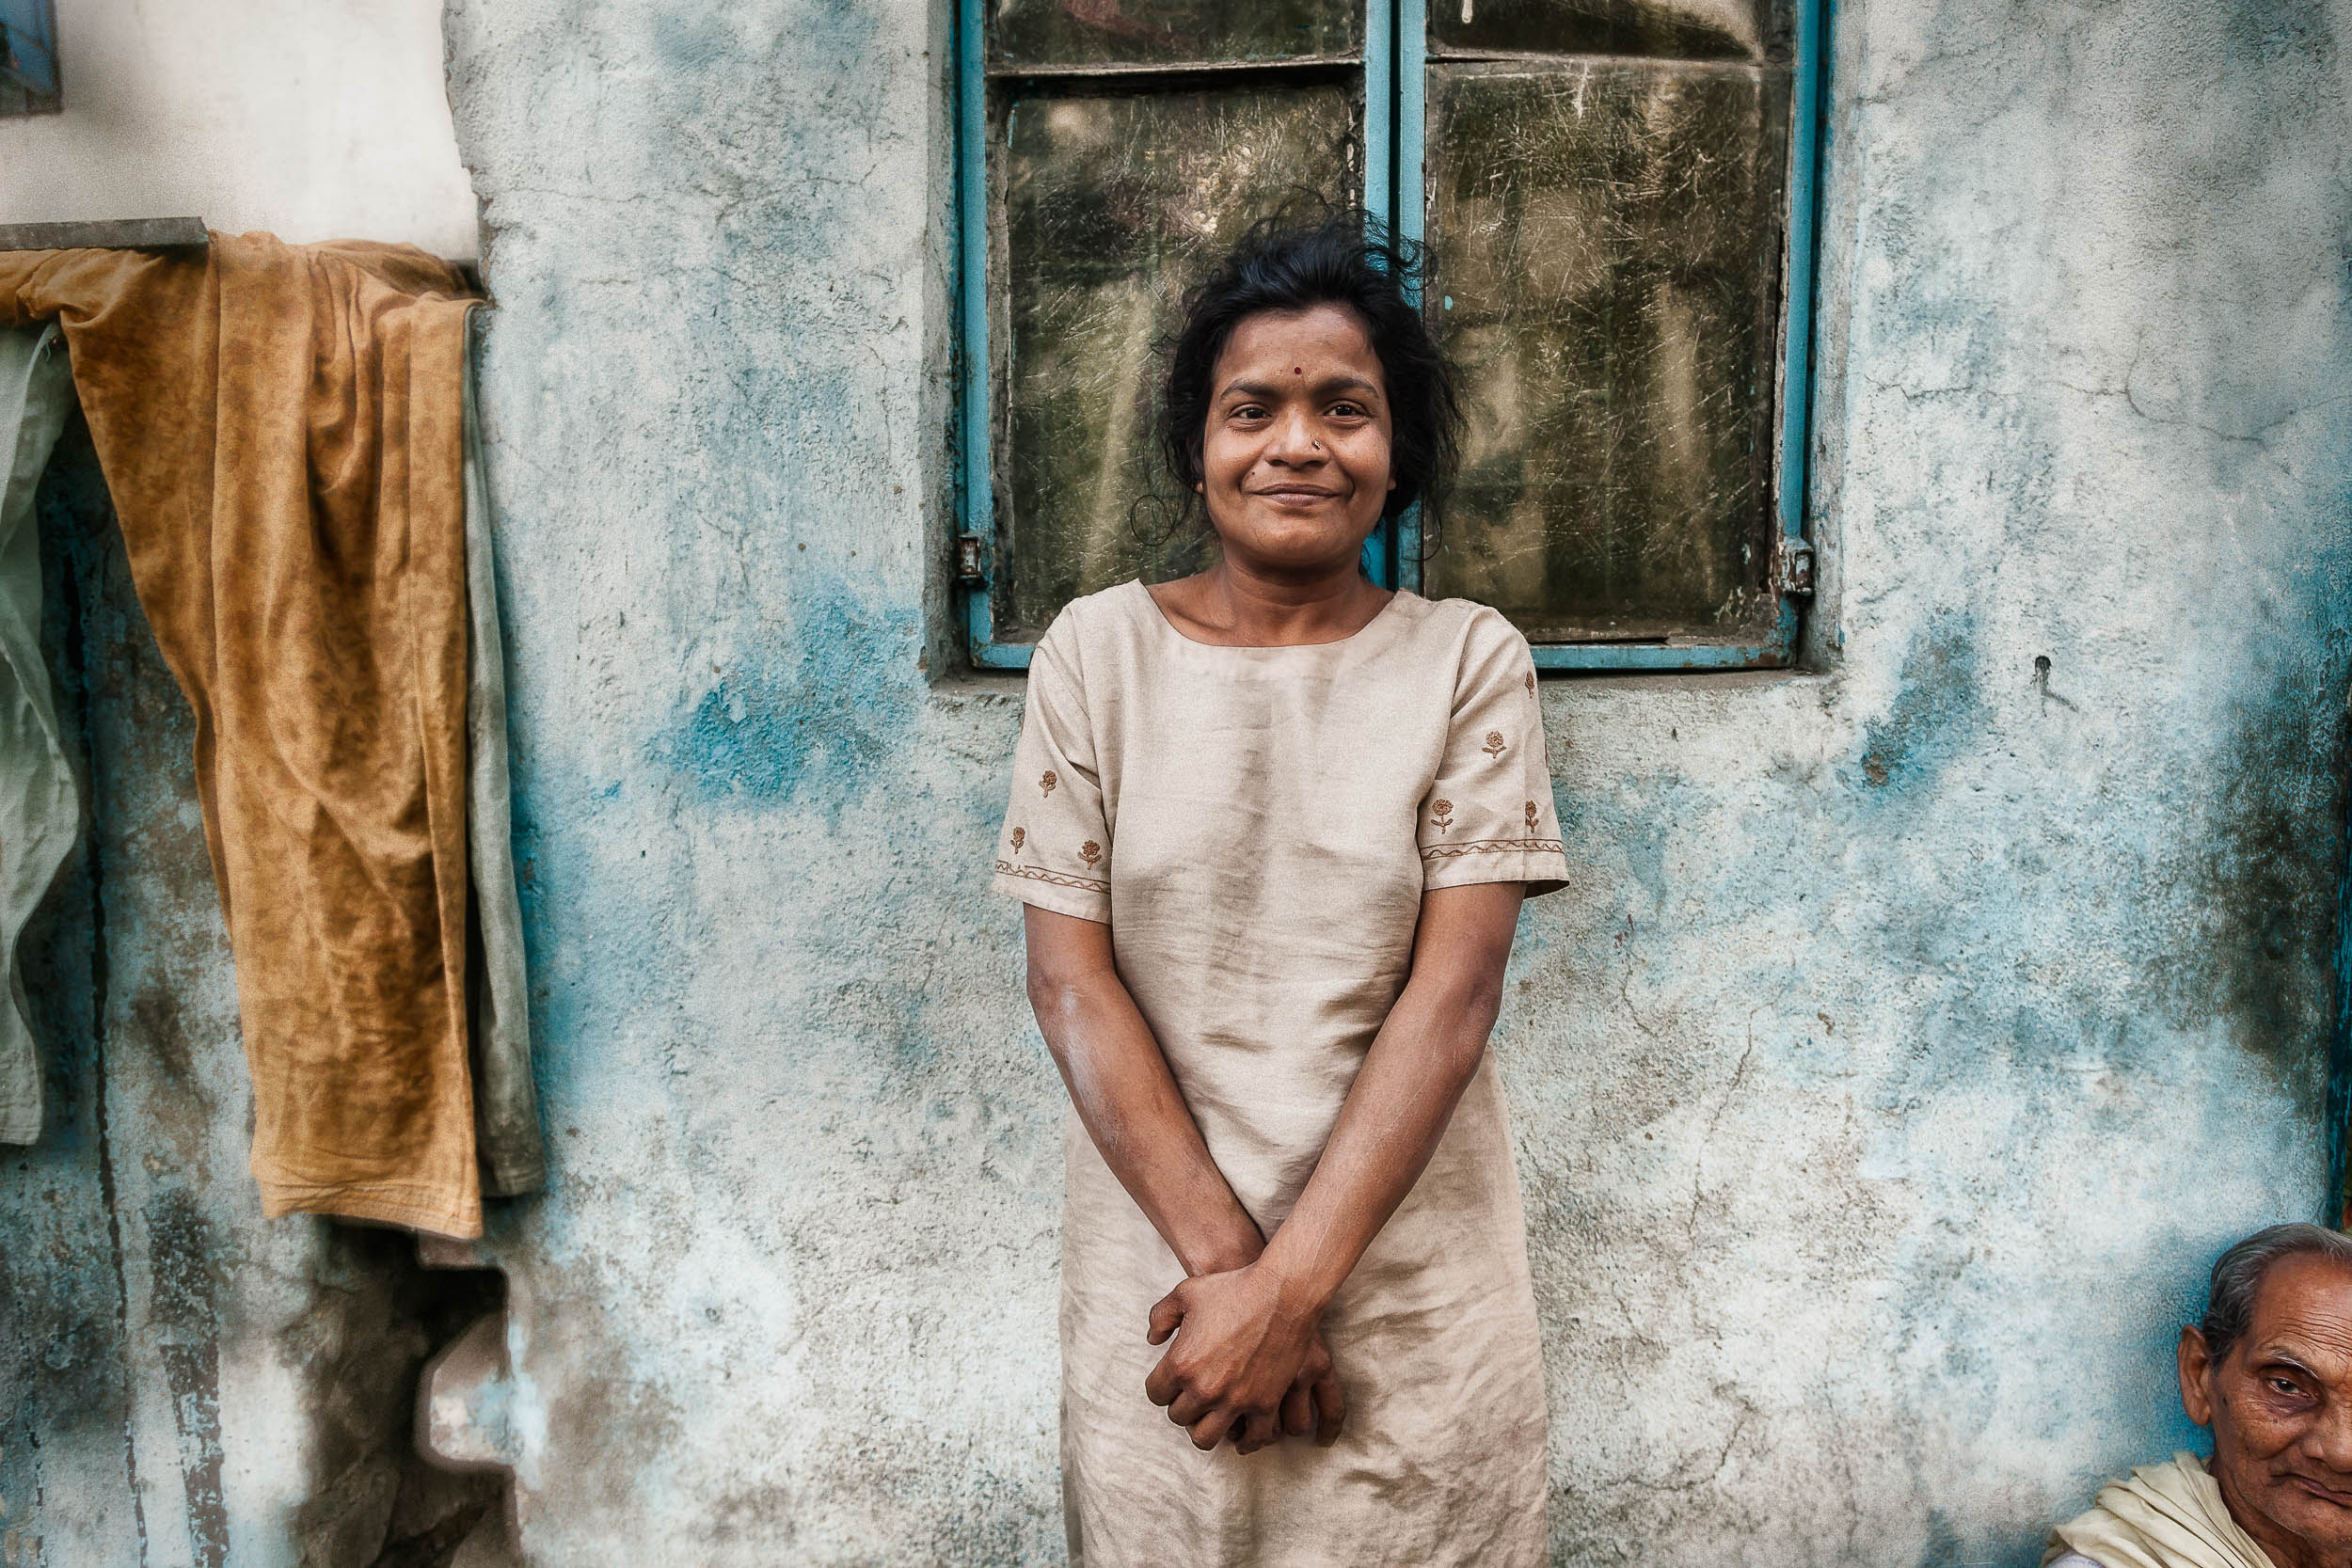 A    portrait of a woman    in front of a    colorful background    in    Kolkata, India   .